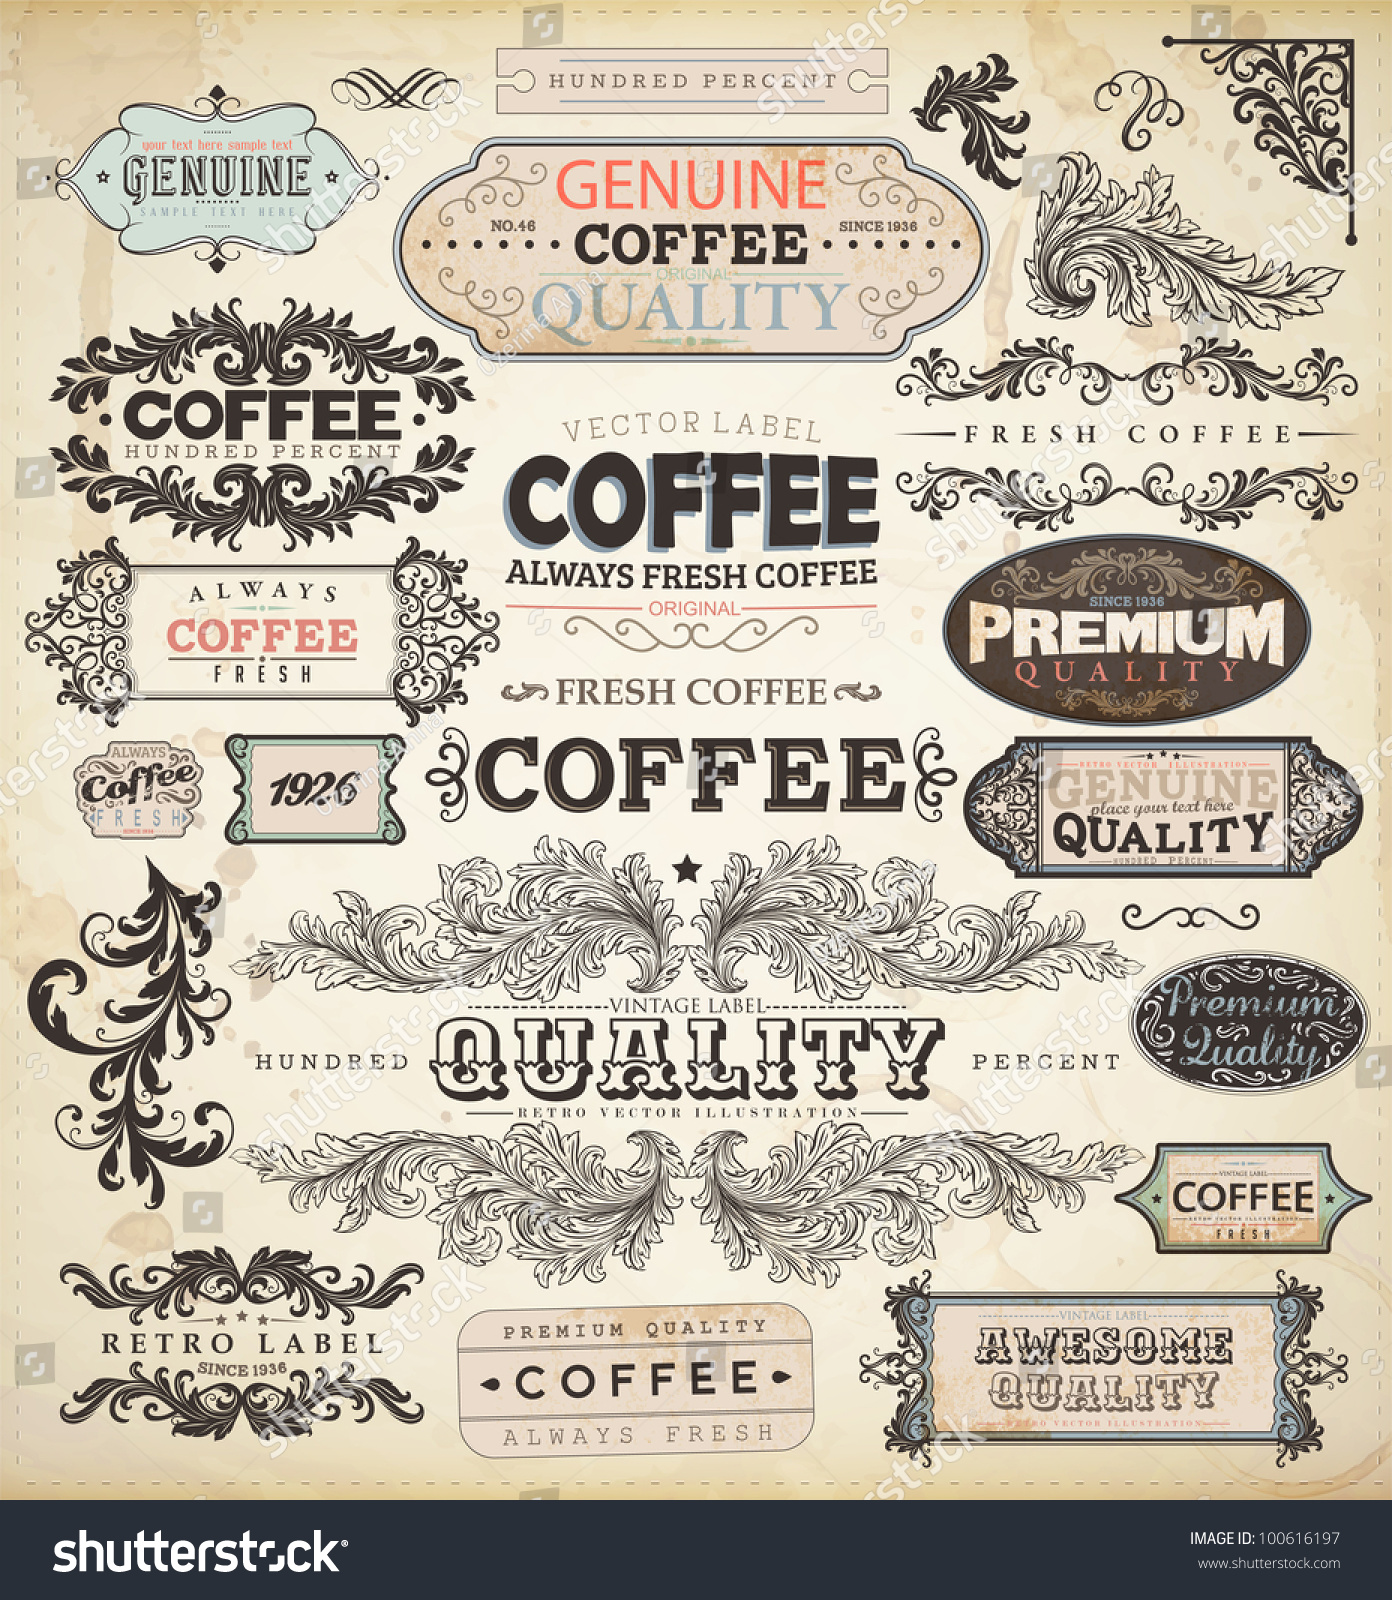 Royalty free collection of vintage elements for 100616197 stock collection of vintage elements for coffee design retro coffee badges and labels old style floral ornaments frames and borders eps10 vector set stock biocorpaavc Image collections